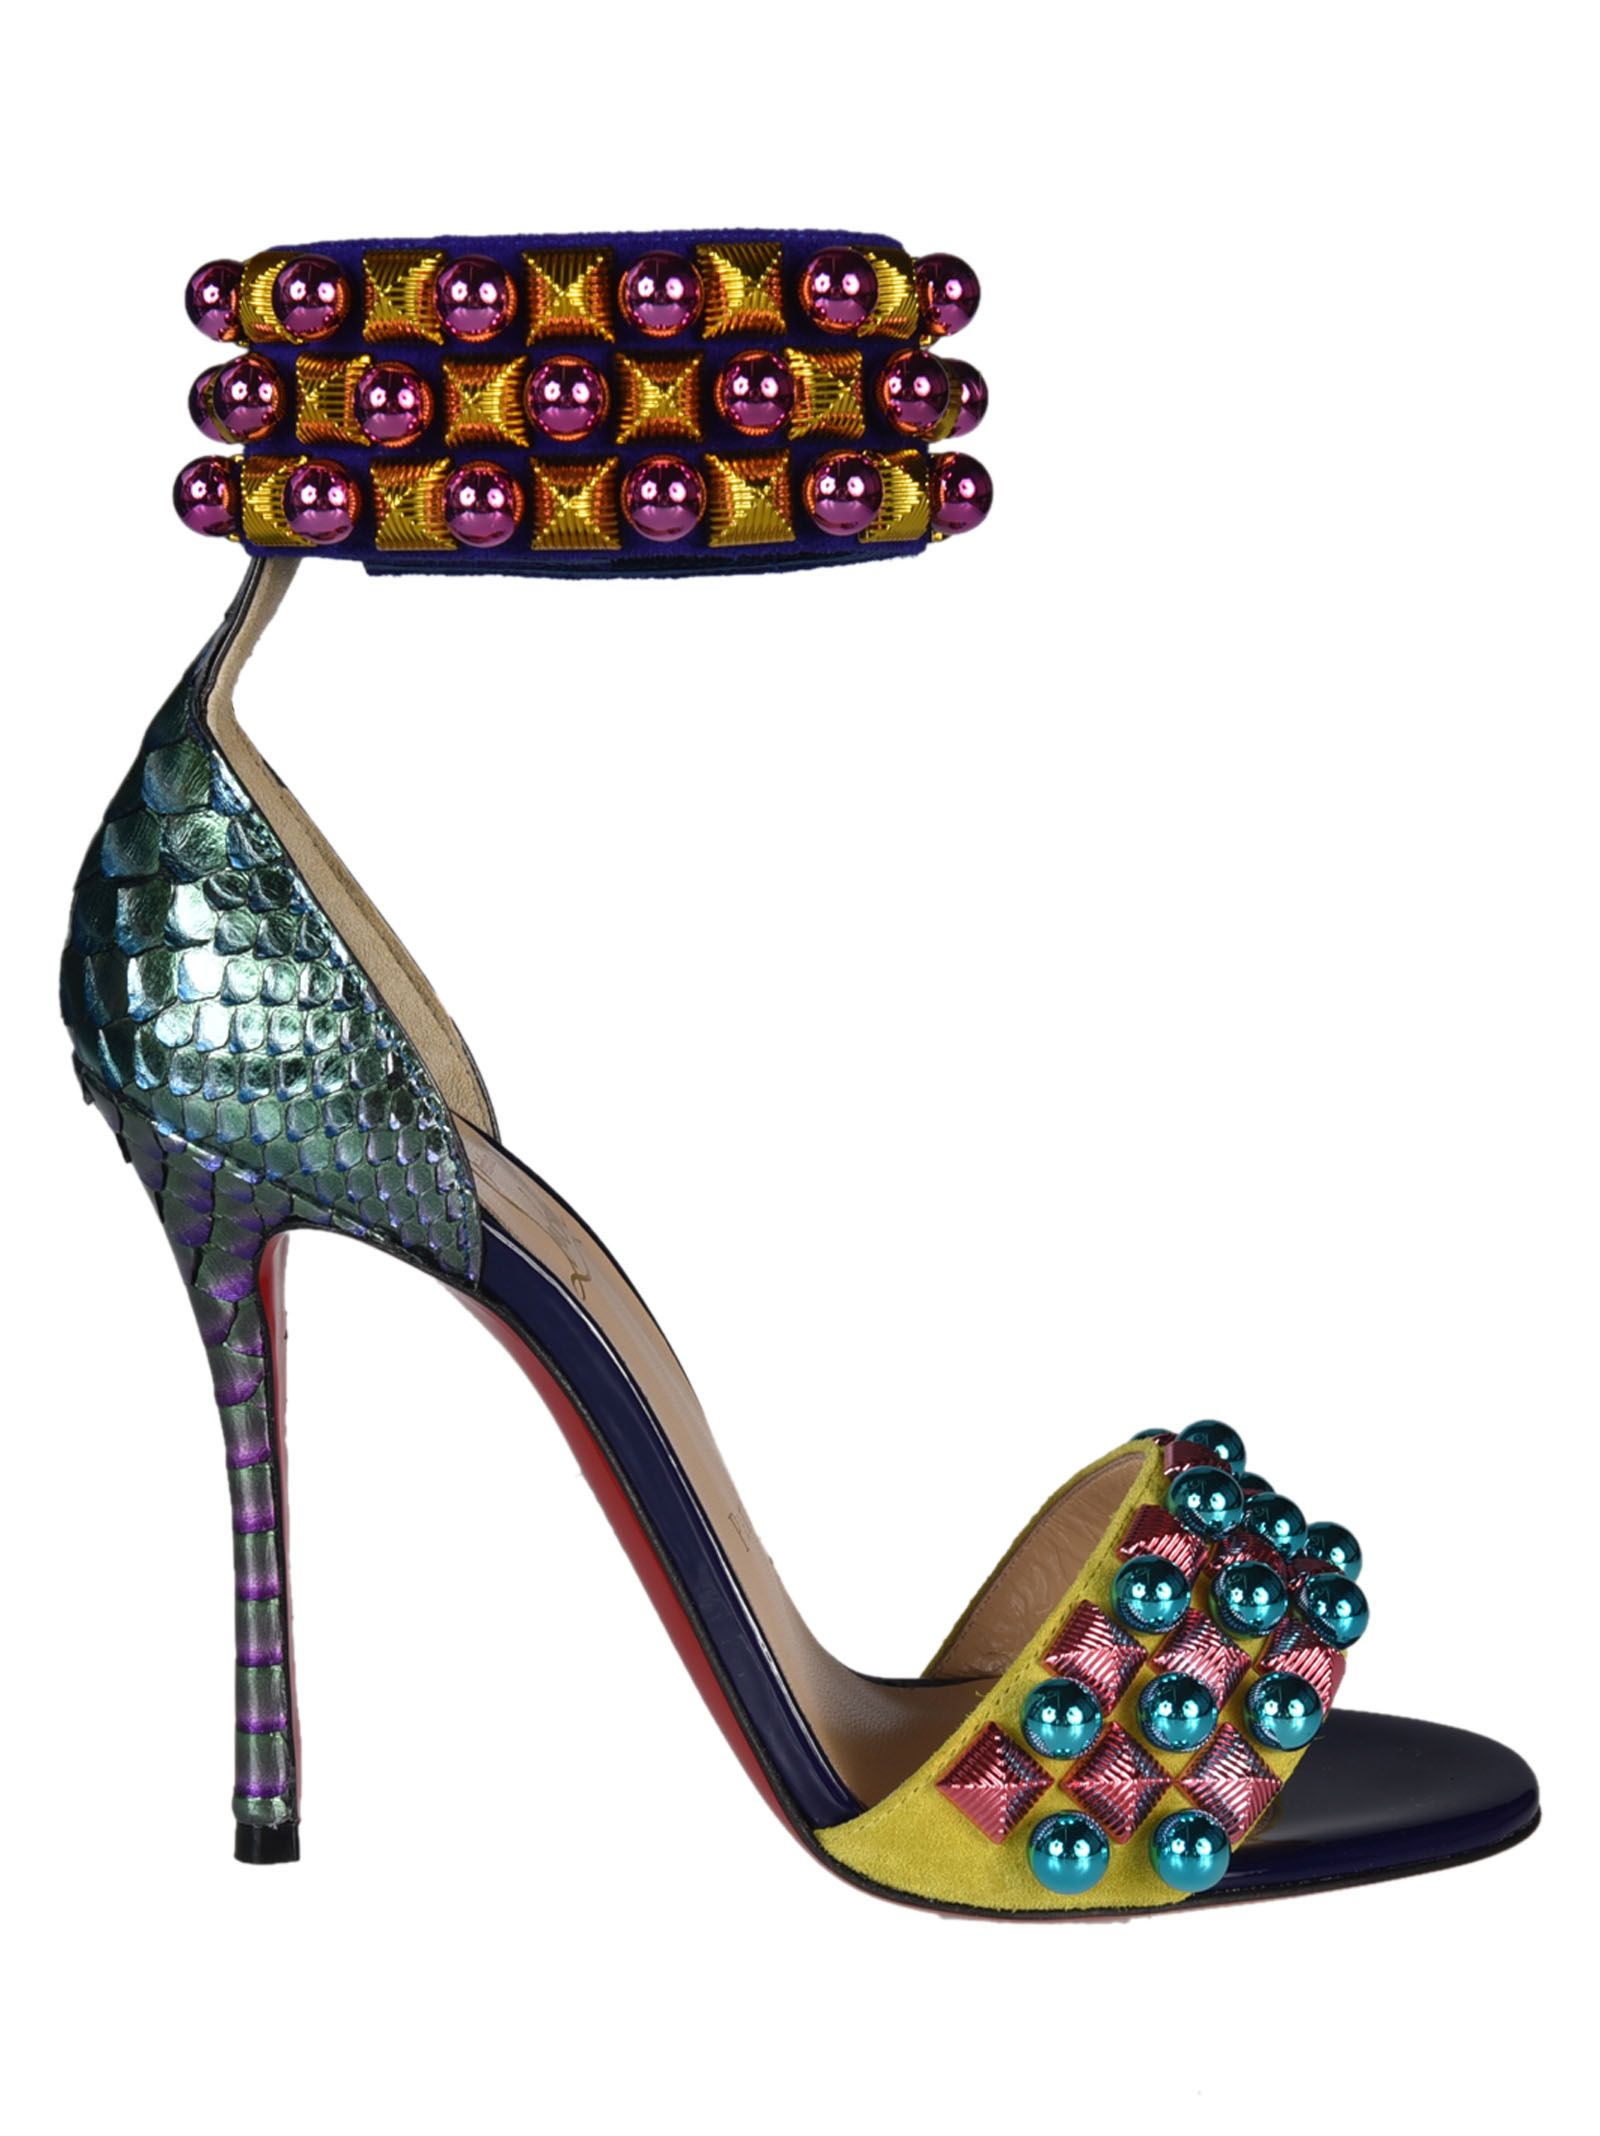 christian louboutin female christian louboutin tudor studded sandals